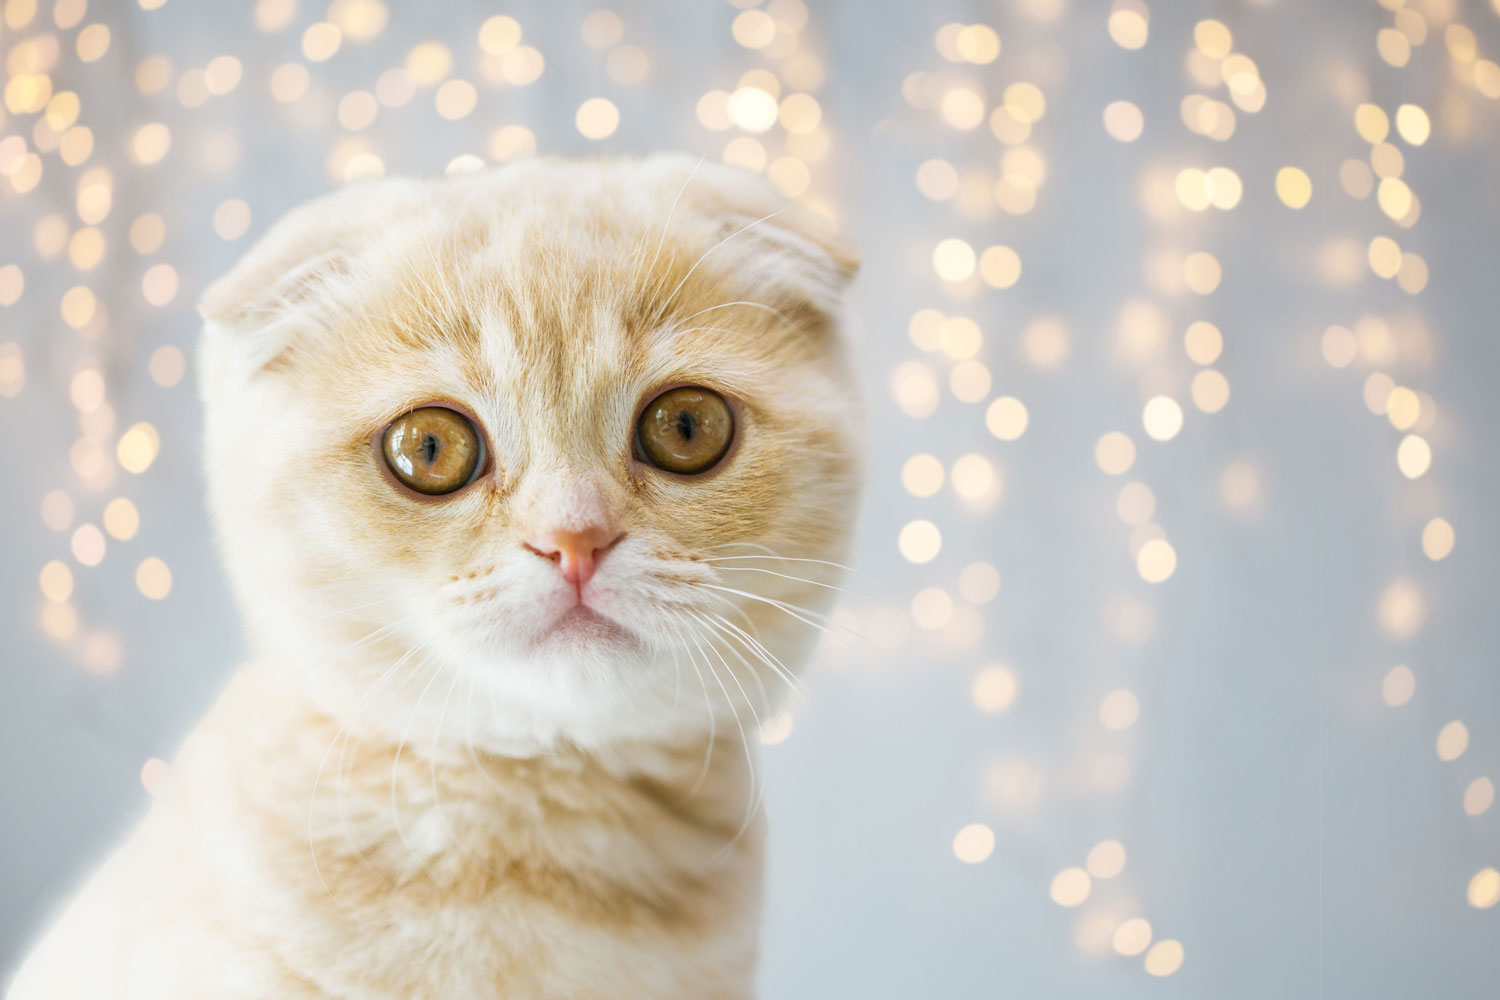 An up close photo of a Scottish Fold cat starring at the camera